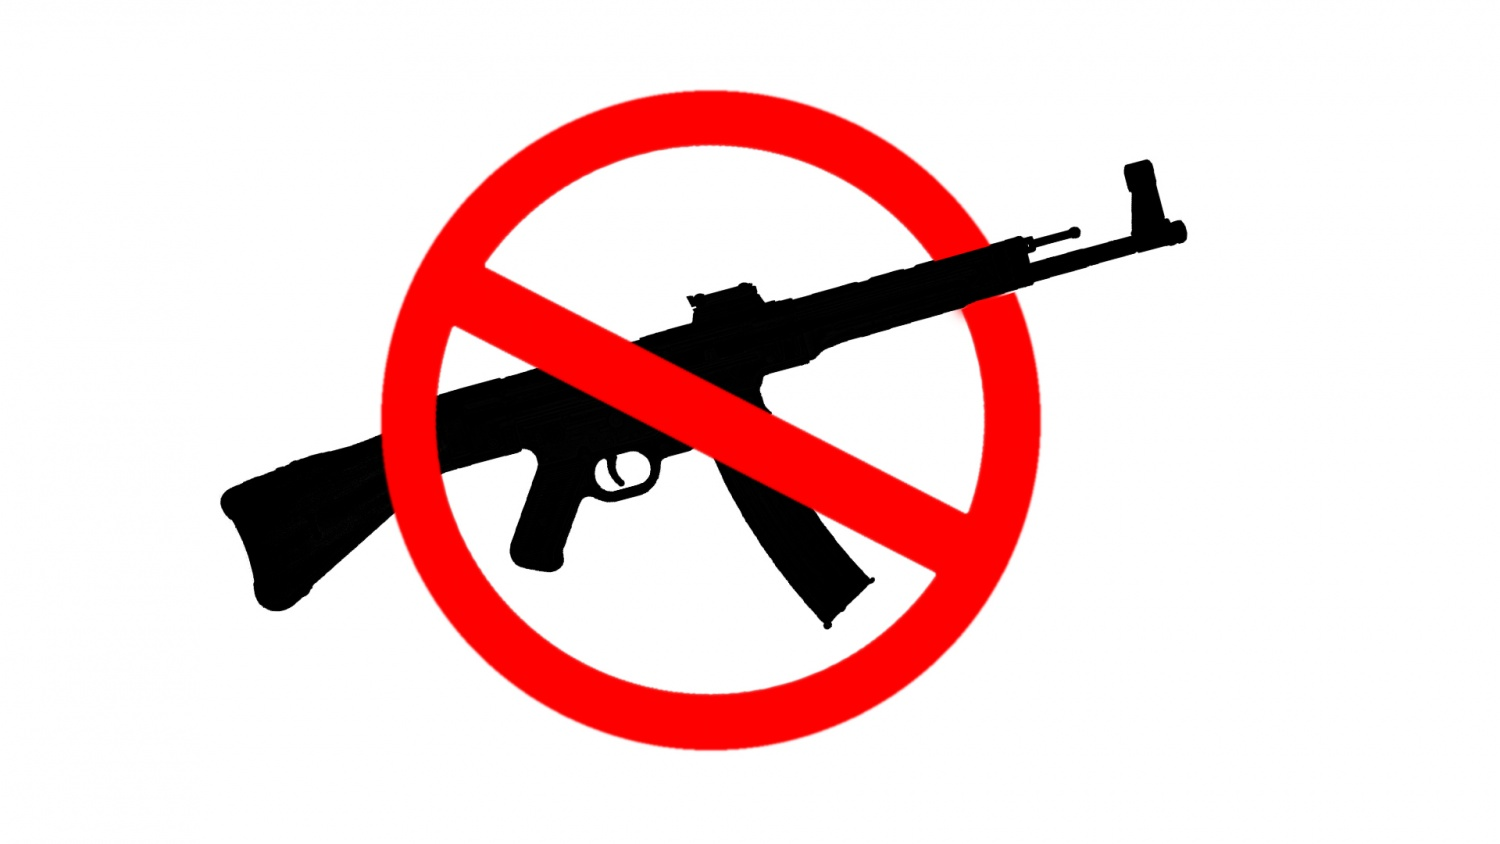 It S Time To Retire Assault Rifle The Firearm Blog